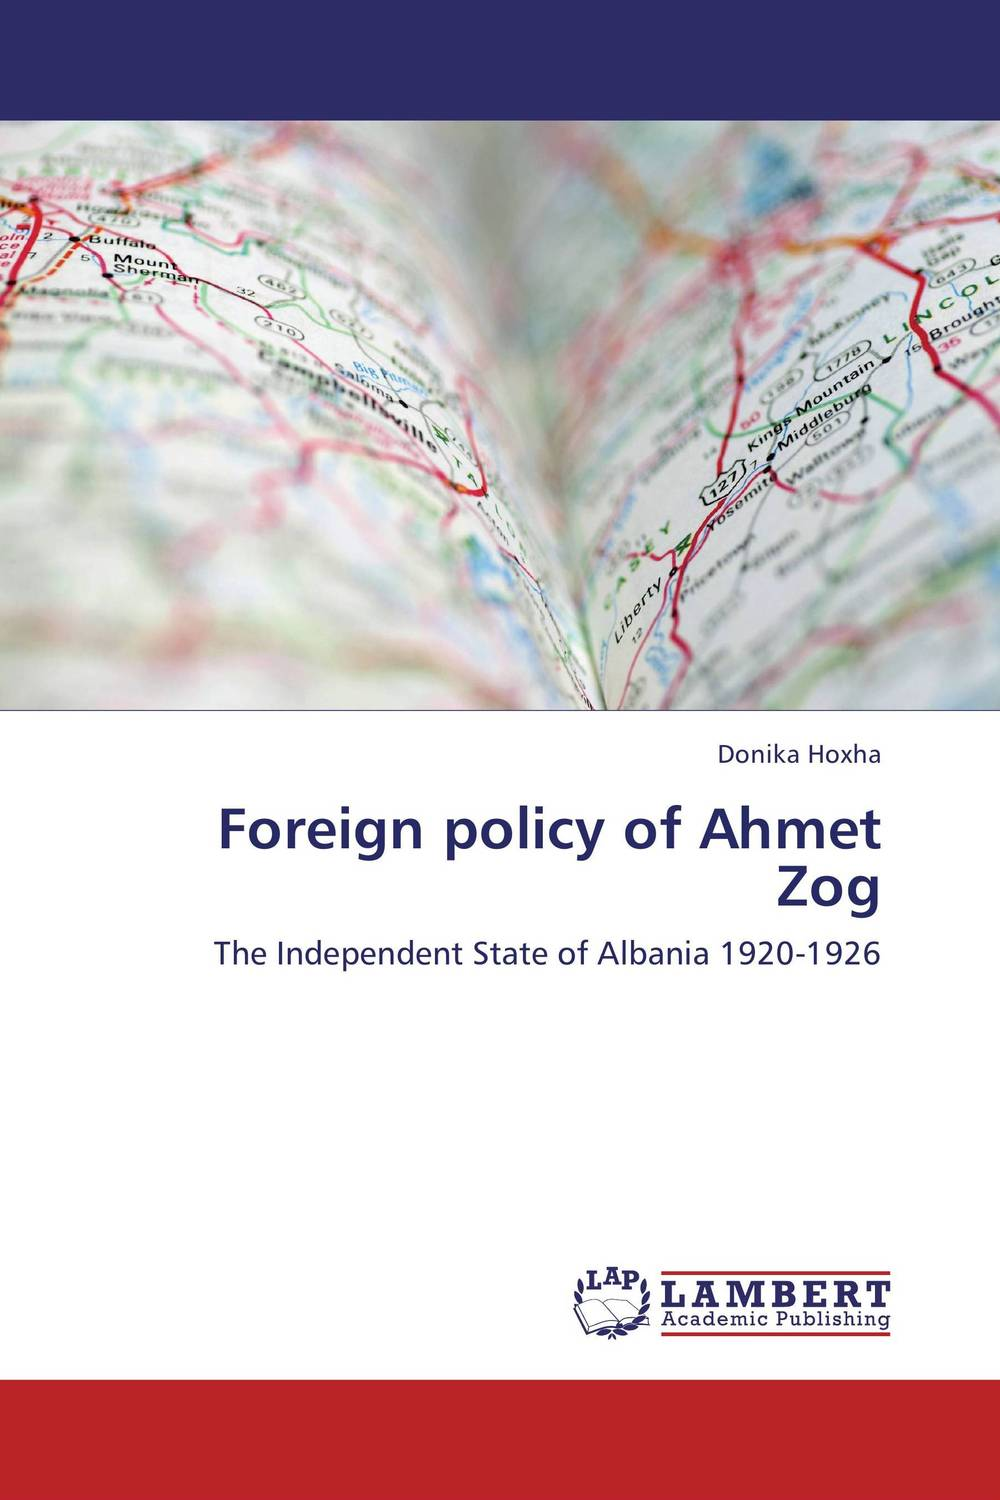 Foreign policy of Ahmet Zog the destruction of tilted arc – documents